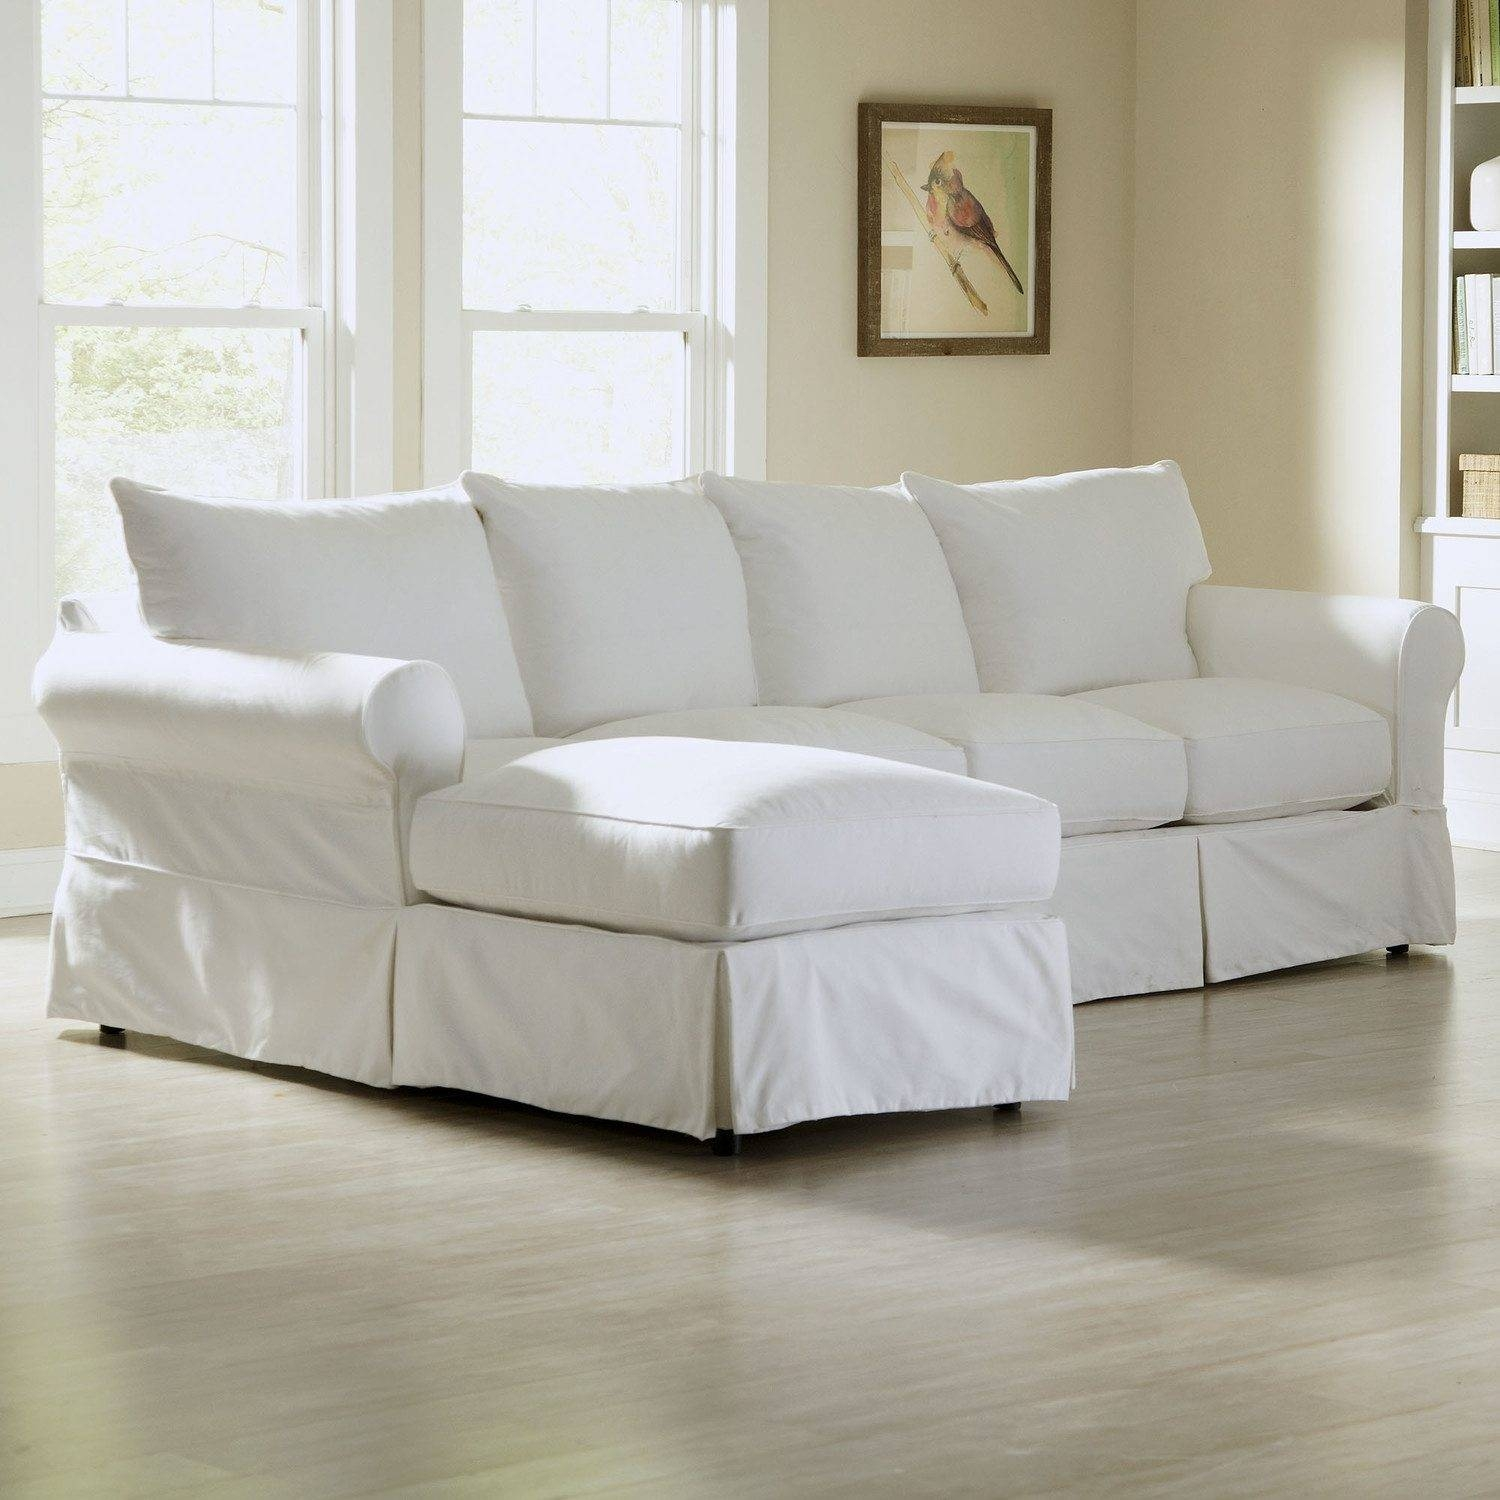 Sofas Center : Cozy Sectional Sofa With Chaise And Ottoman About for Down Filled Sectional Sofas (Image 22 of 30)